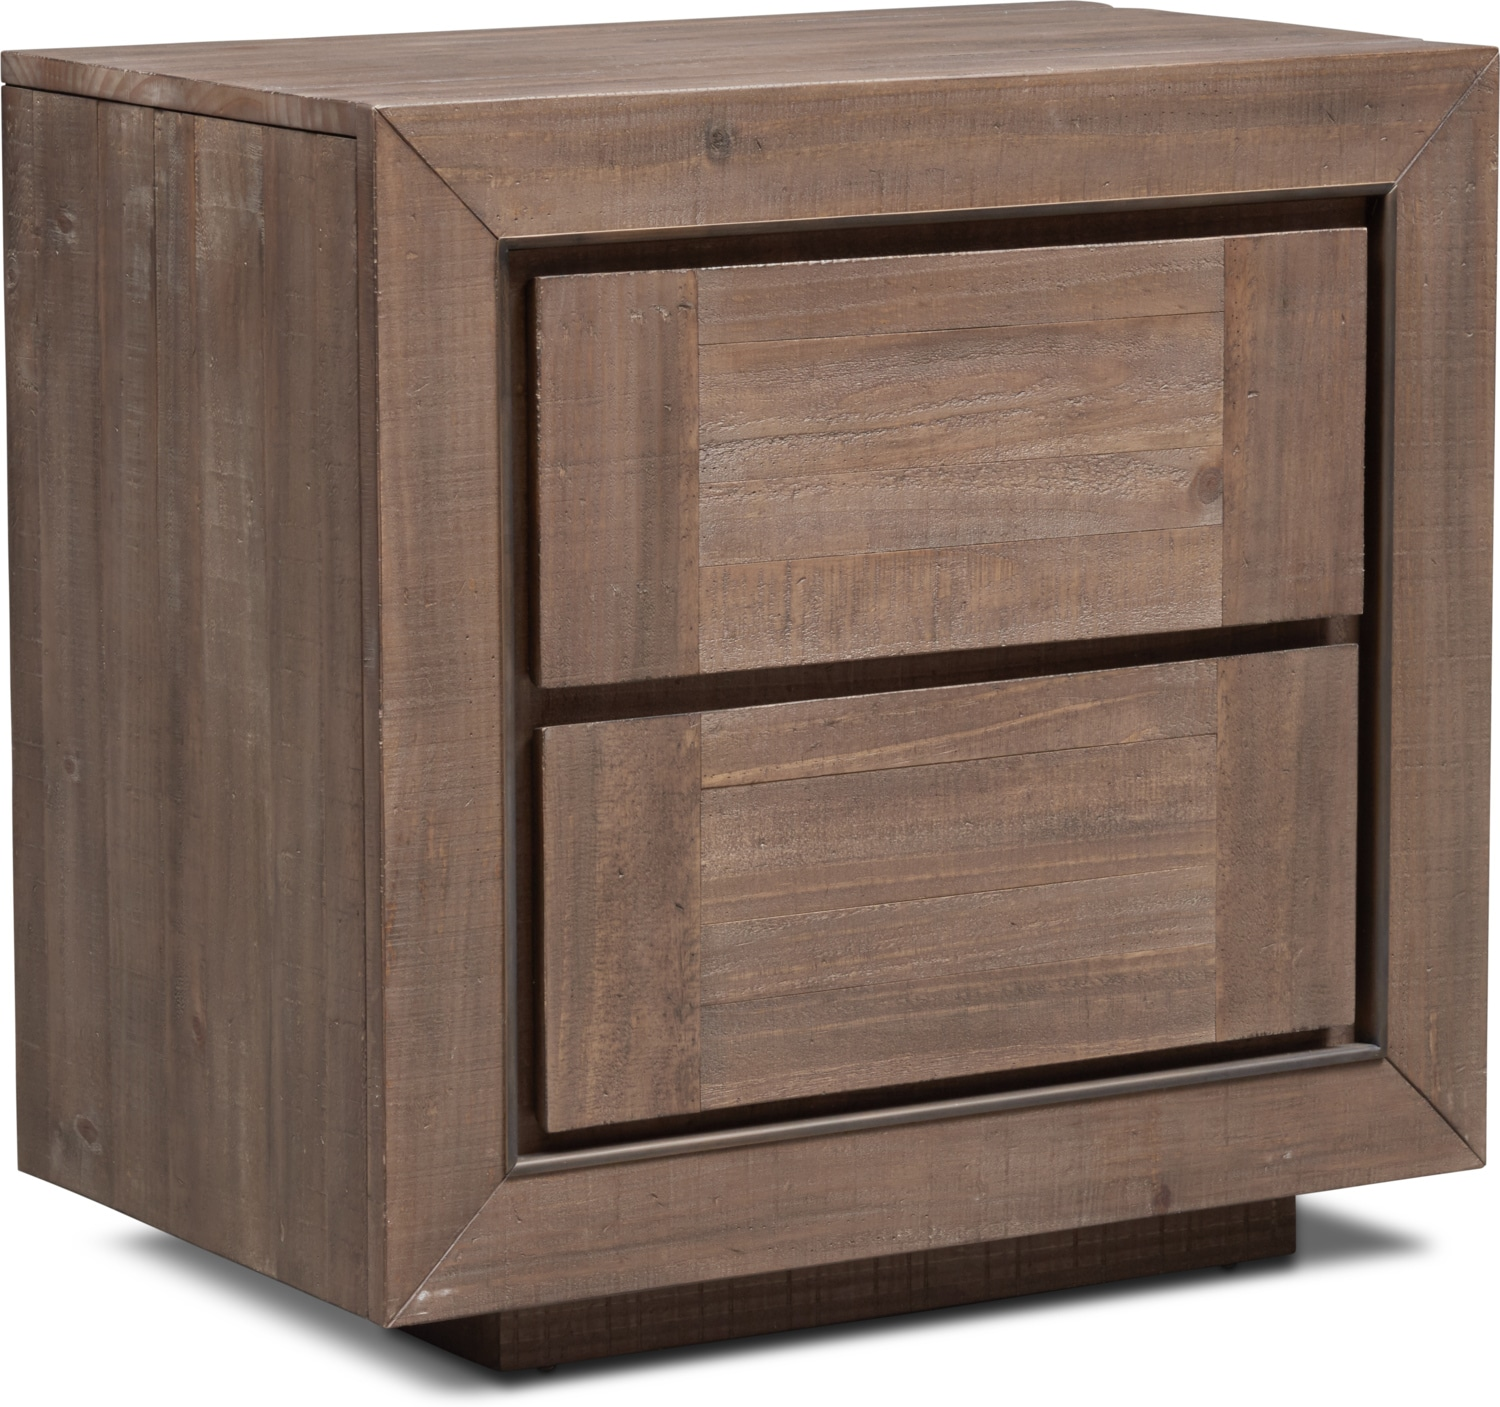 Bedroom Furniture - Henry Nightstand - Rustic Brown